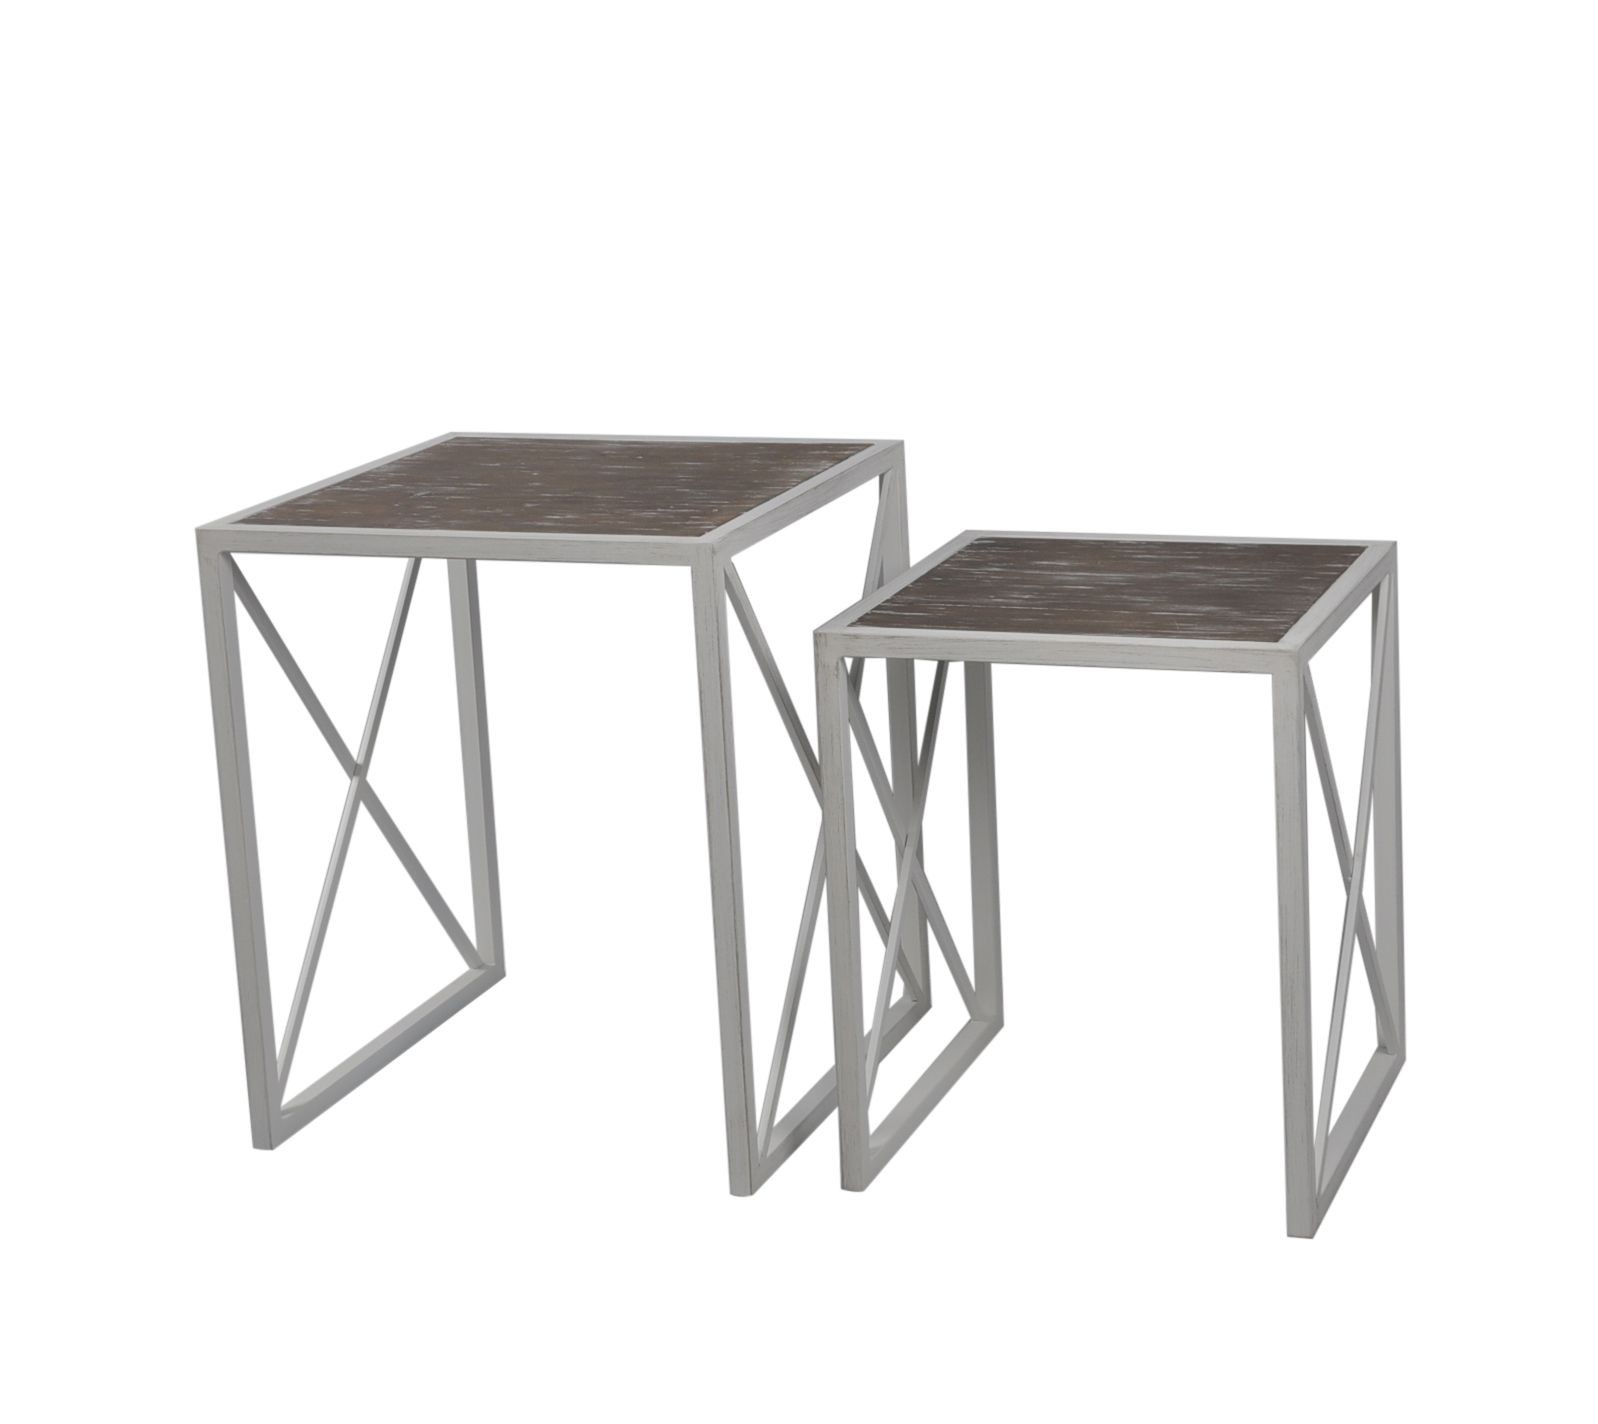 mirrored accent table awesome aps set two nested metal tables lamps per black white coffee with shelf tiffany style snack ikea outside furniture inexpensive end modern occasional